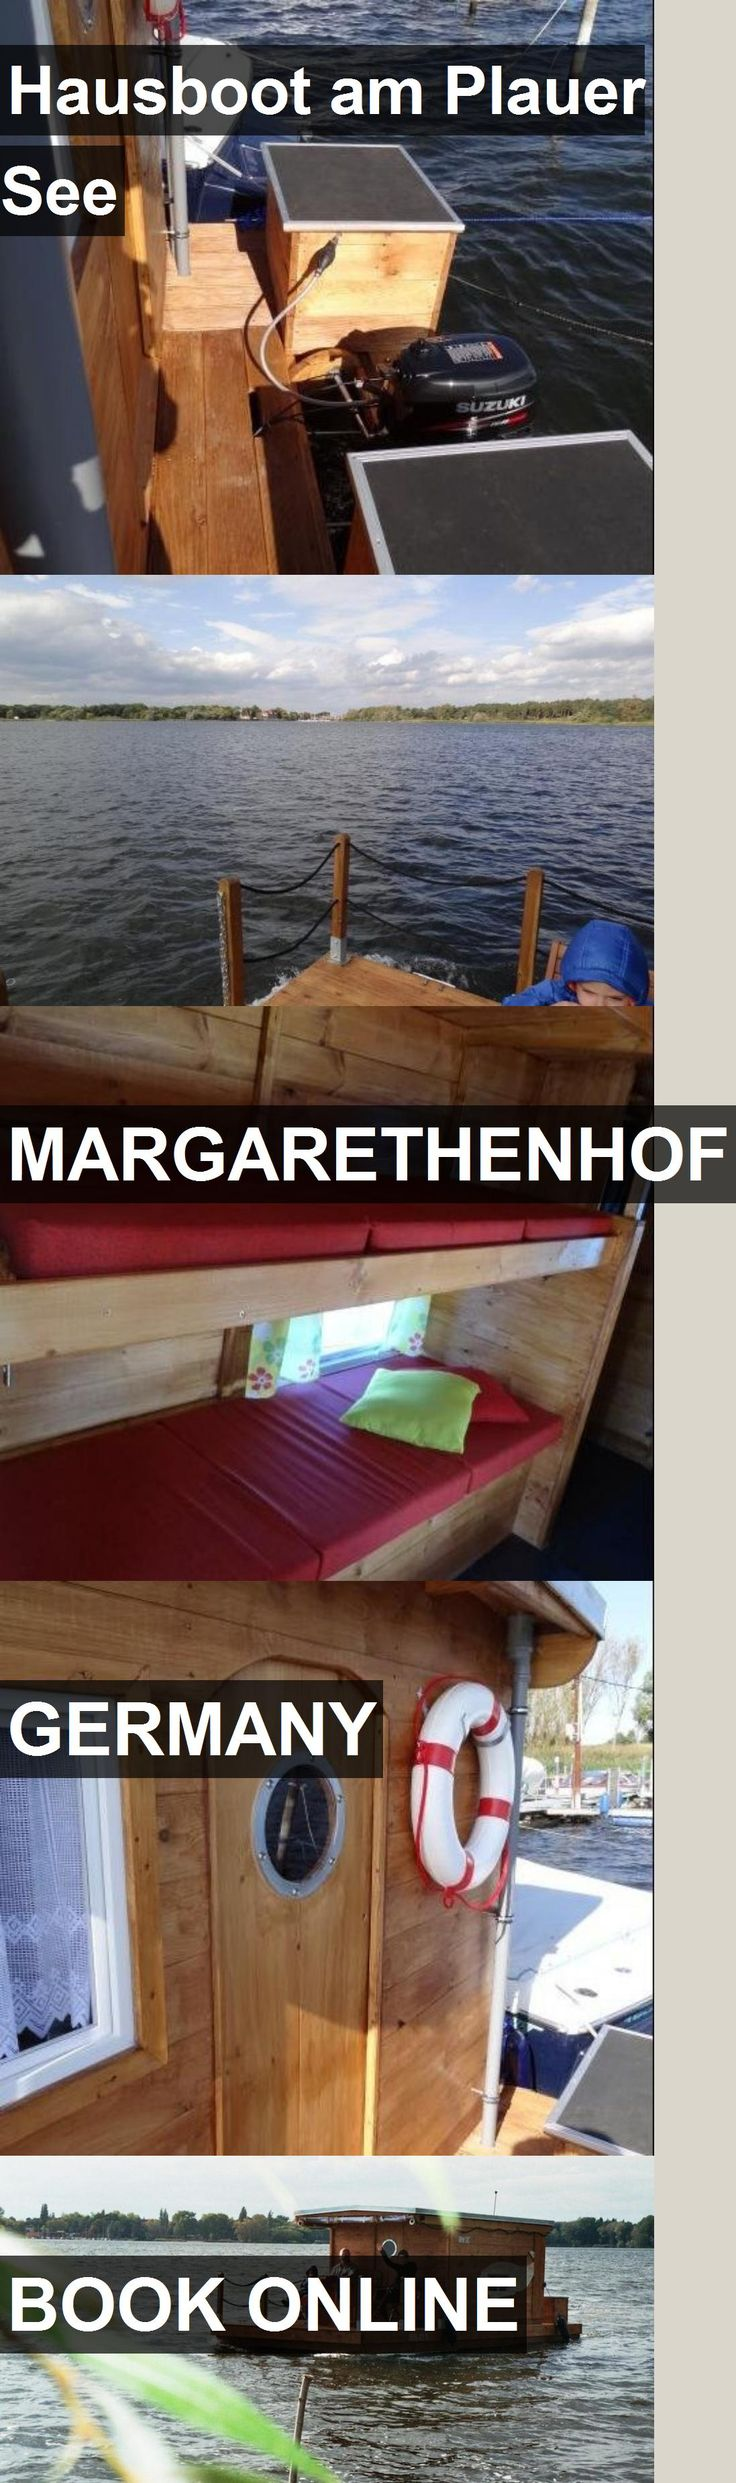 Hotel Hausboot am Plauer See in Margarethenhof, Germany. For more information, photos, reviews and best prices please follow the link. #Germany #Margarethenhof #travel #vacation #hotel